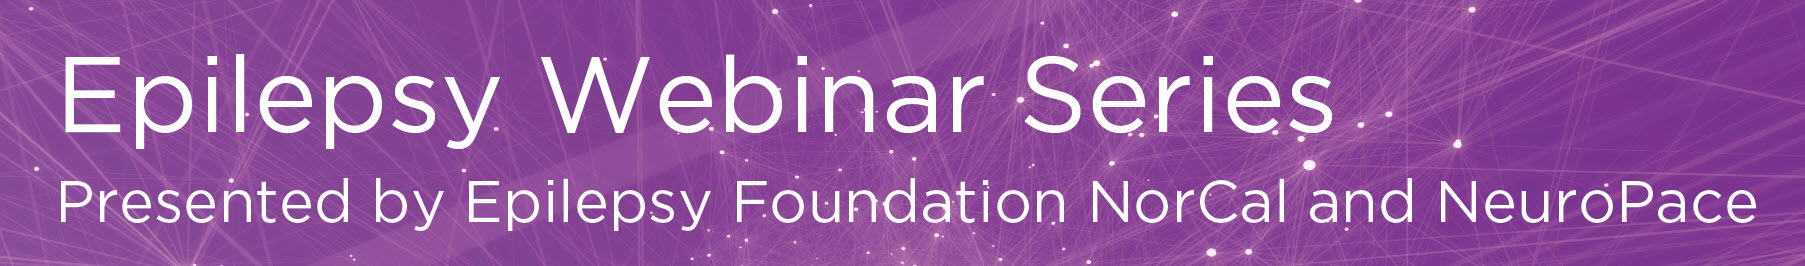 Epilepsy Webinar Series – Epilepsy Foundation of Northern